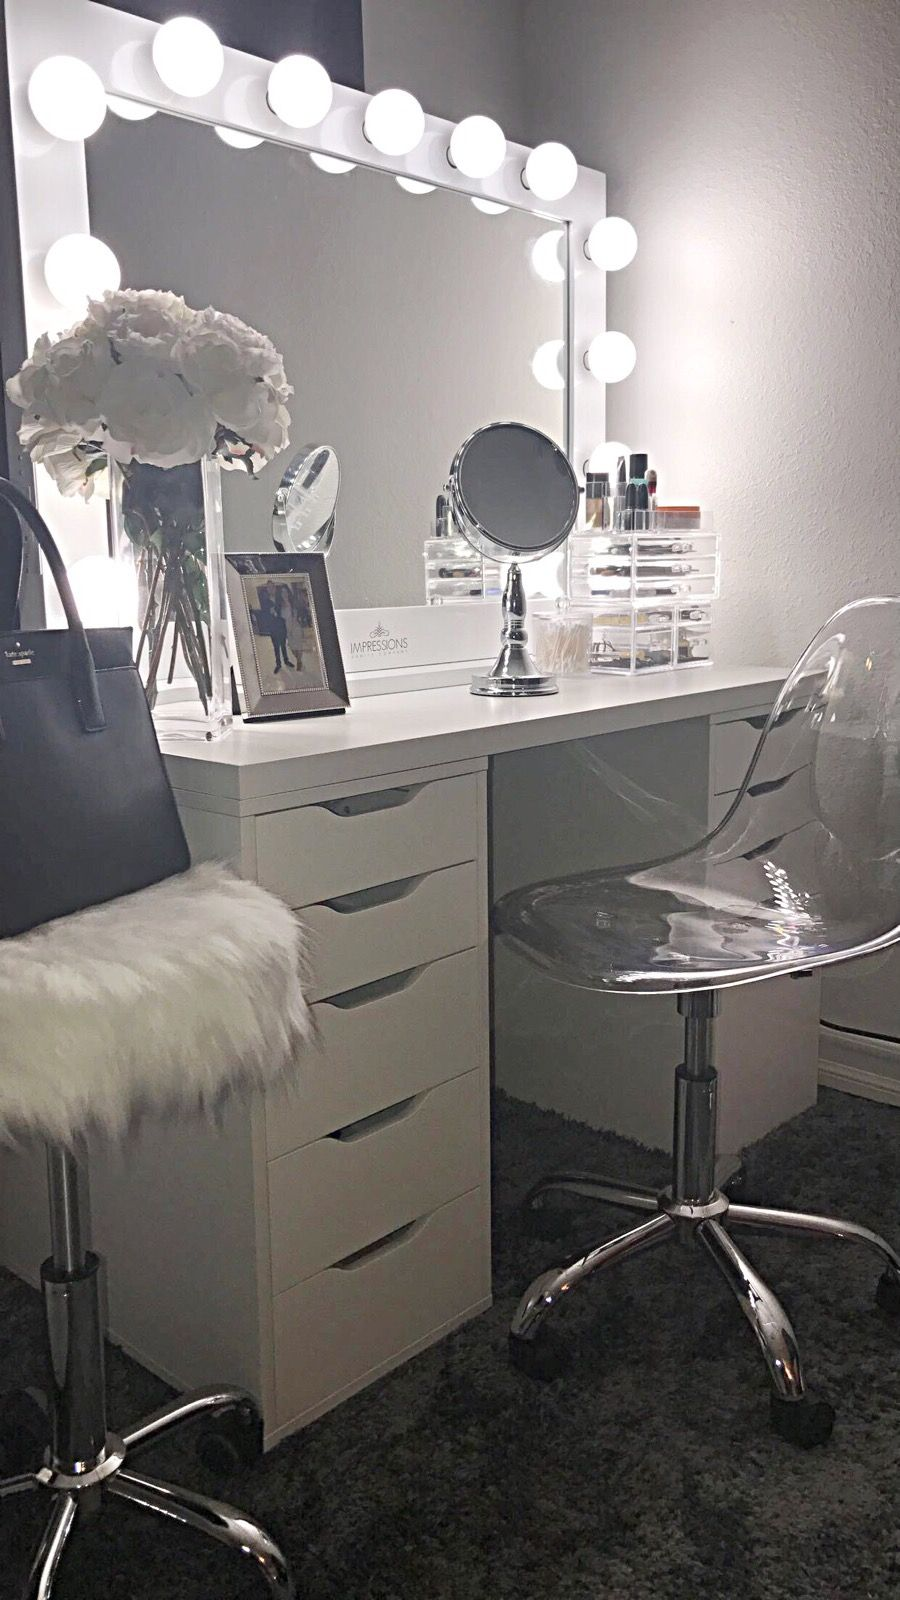 Pinterest claudiagabg bedroom ideas pinterest makeup room